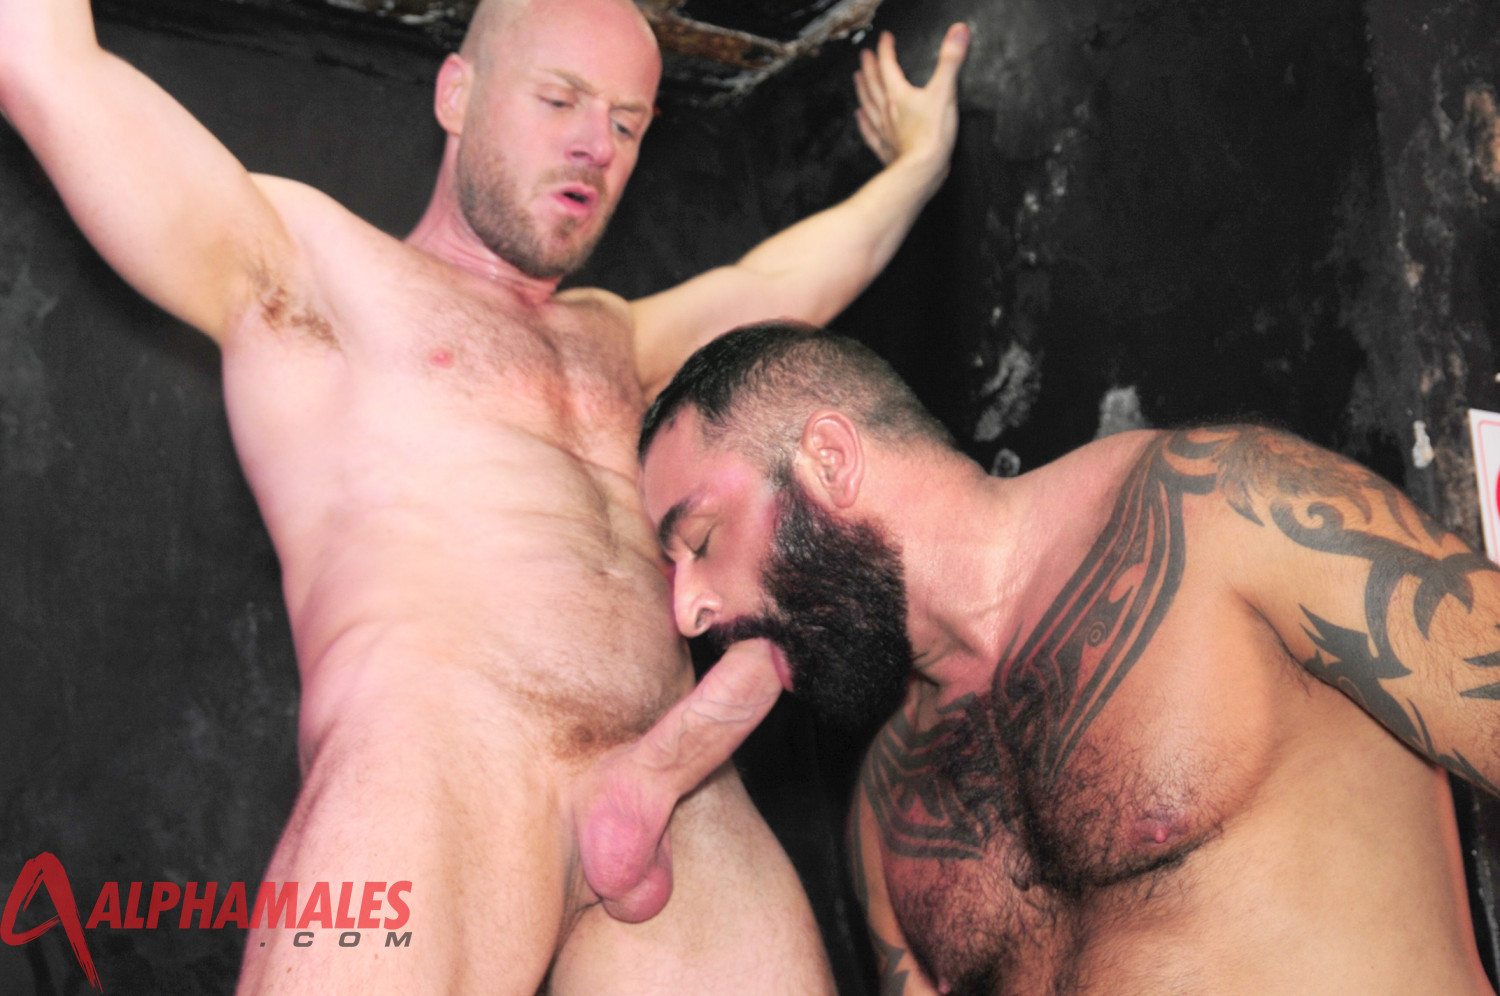 Alphamales-Nathan-Price-and-Tom-Colt-fucking-06 Amateur Tattoo Hairy Muscle Man Fucks a Hot Sex Pig in the Club Toilet